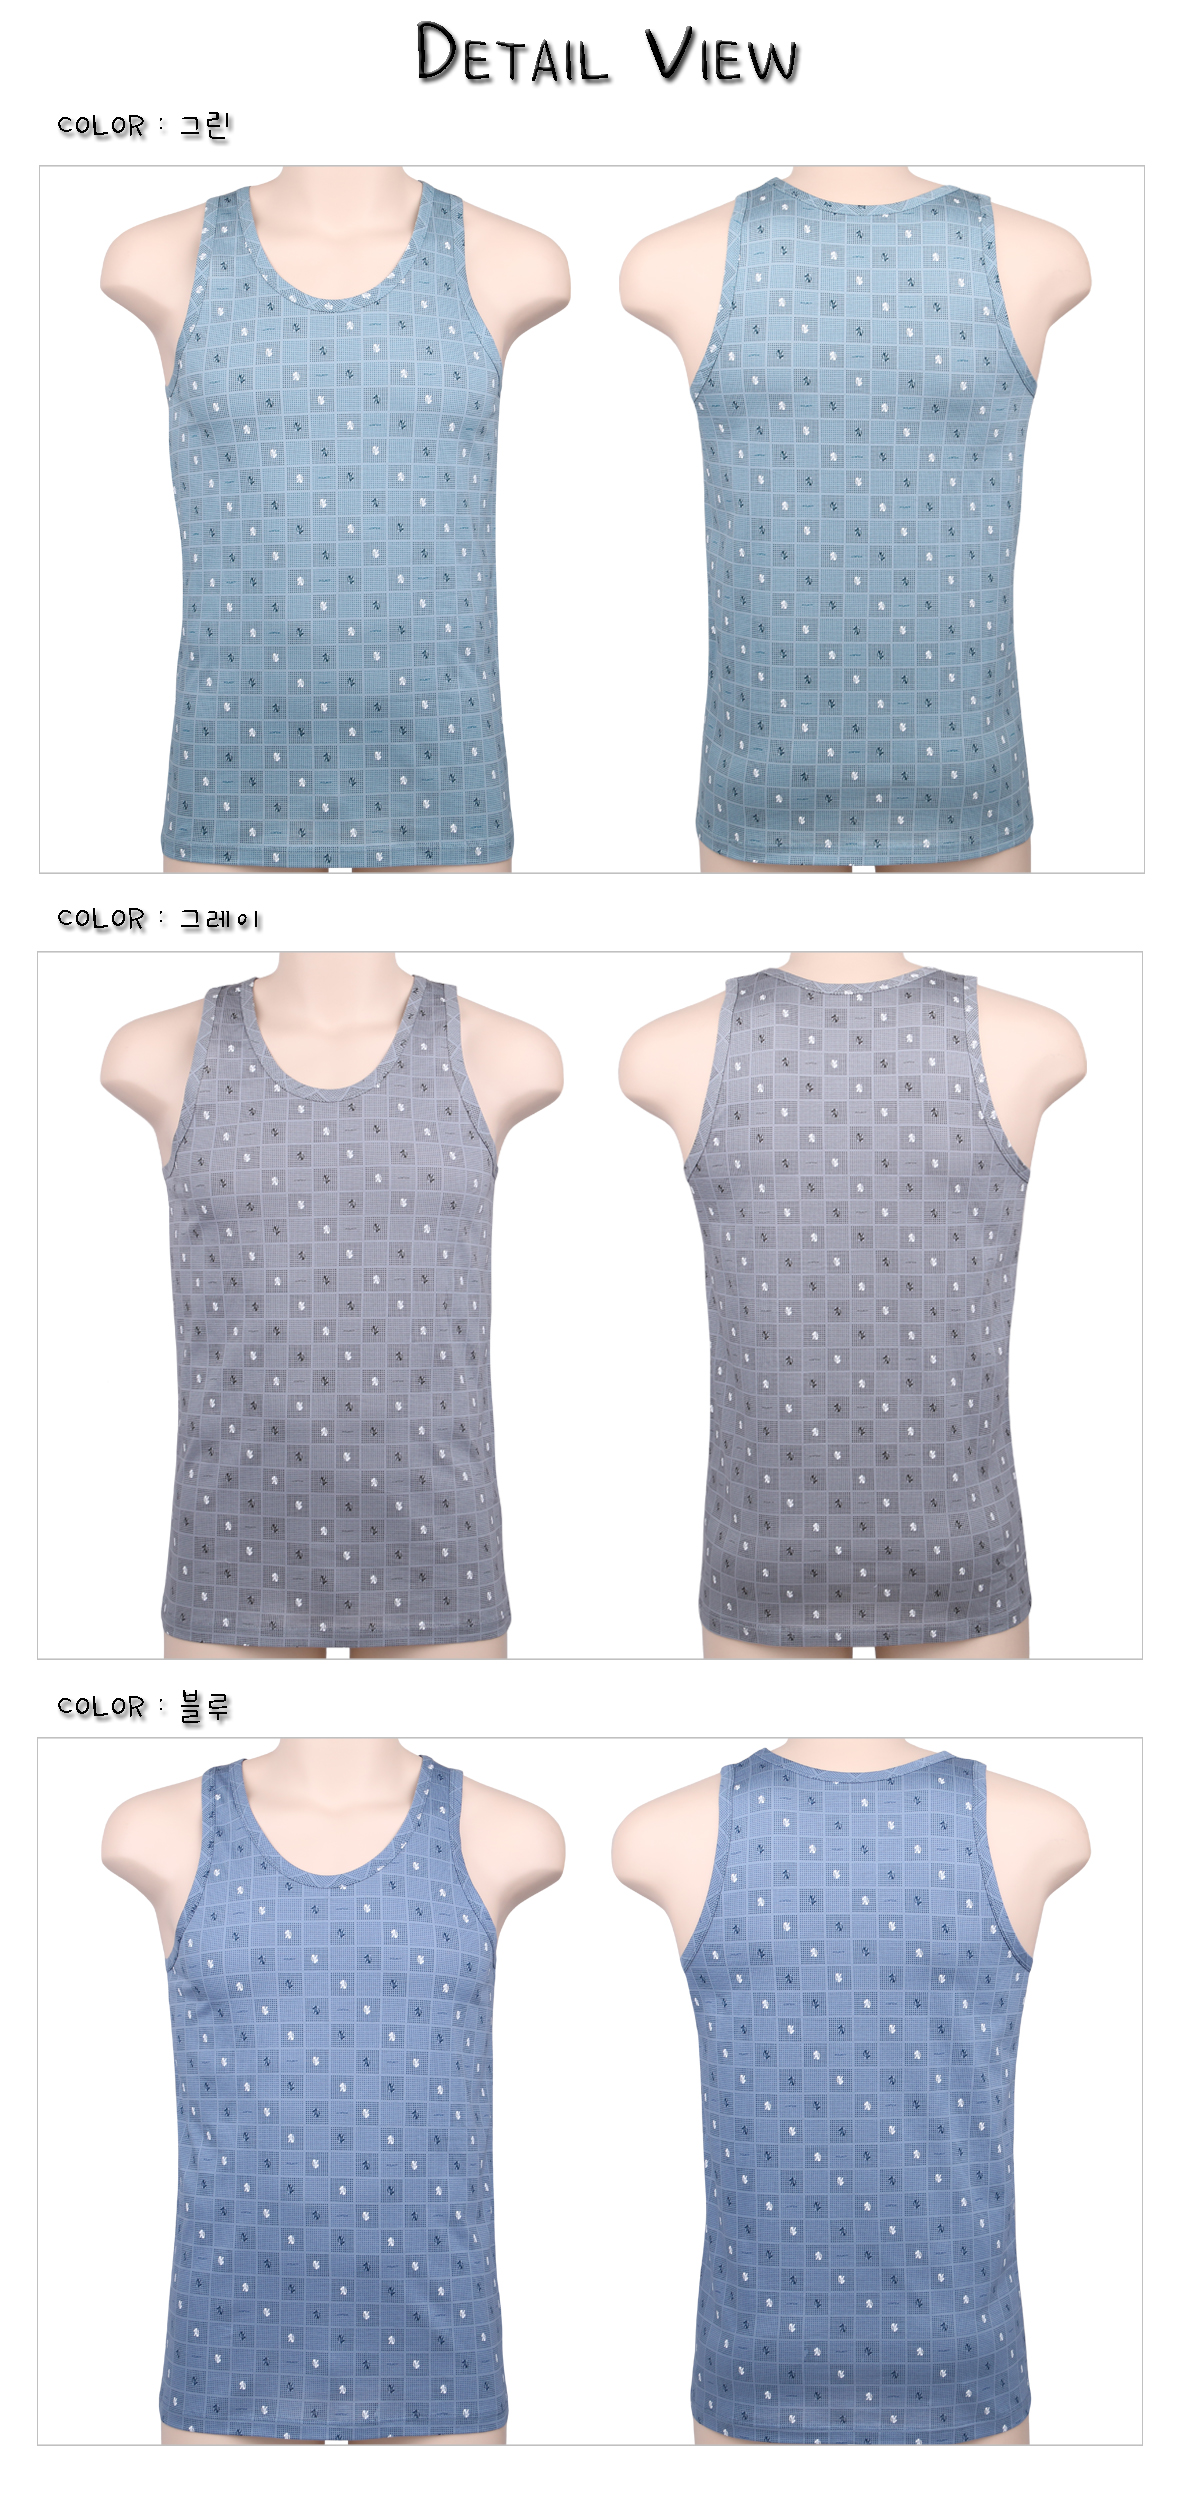 [ POLMIT ] Man Sleeveless Shirt Pattern Color 3Set